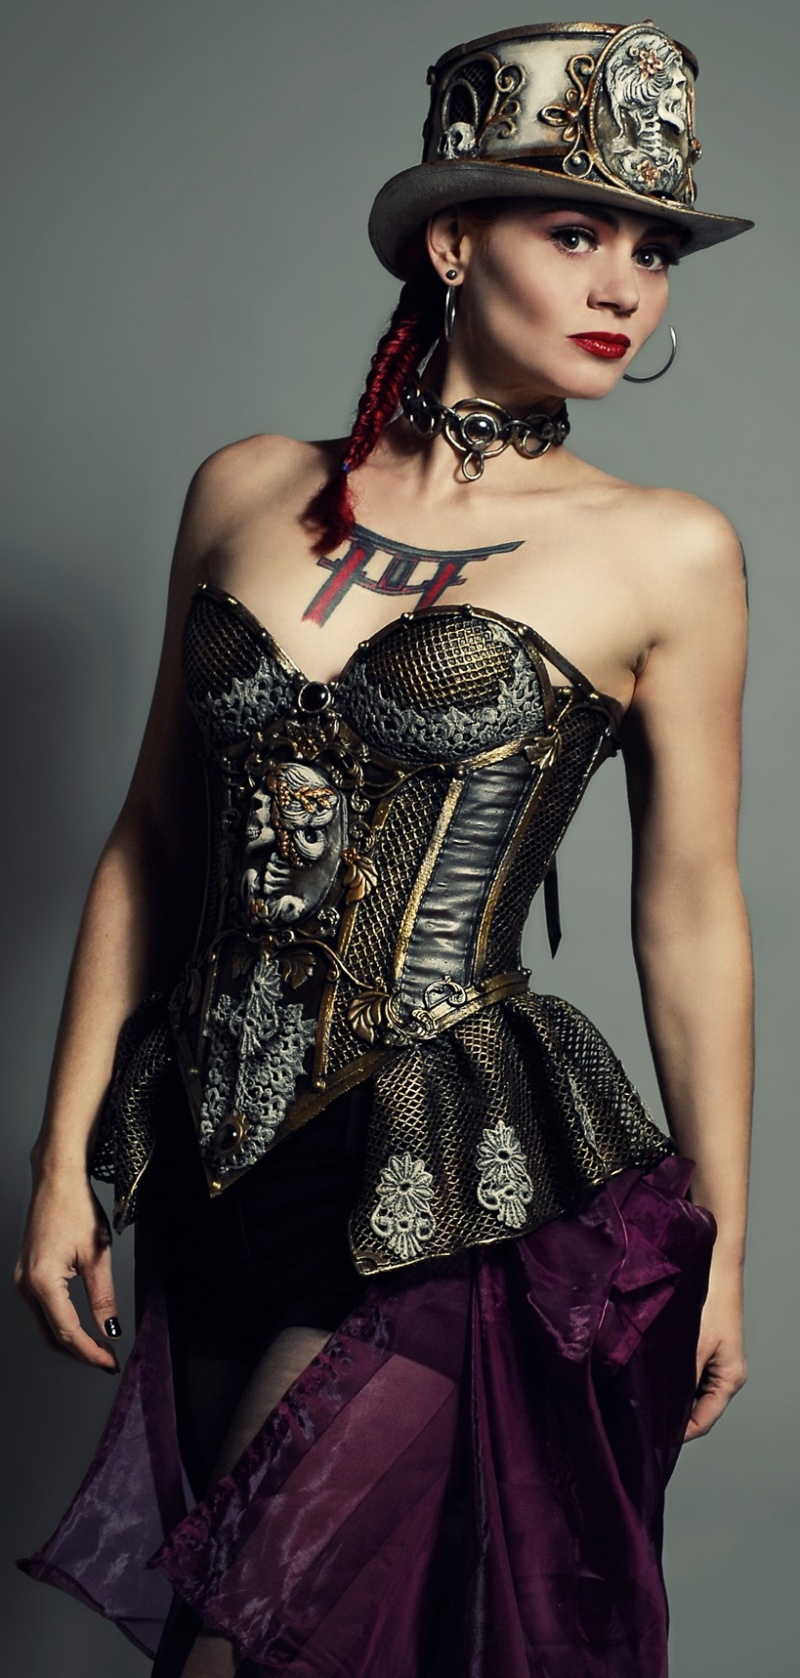 Nov 11, 2012 Steampunk corset and top hat